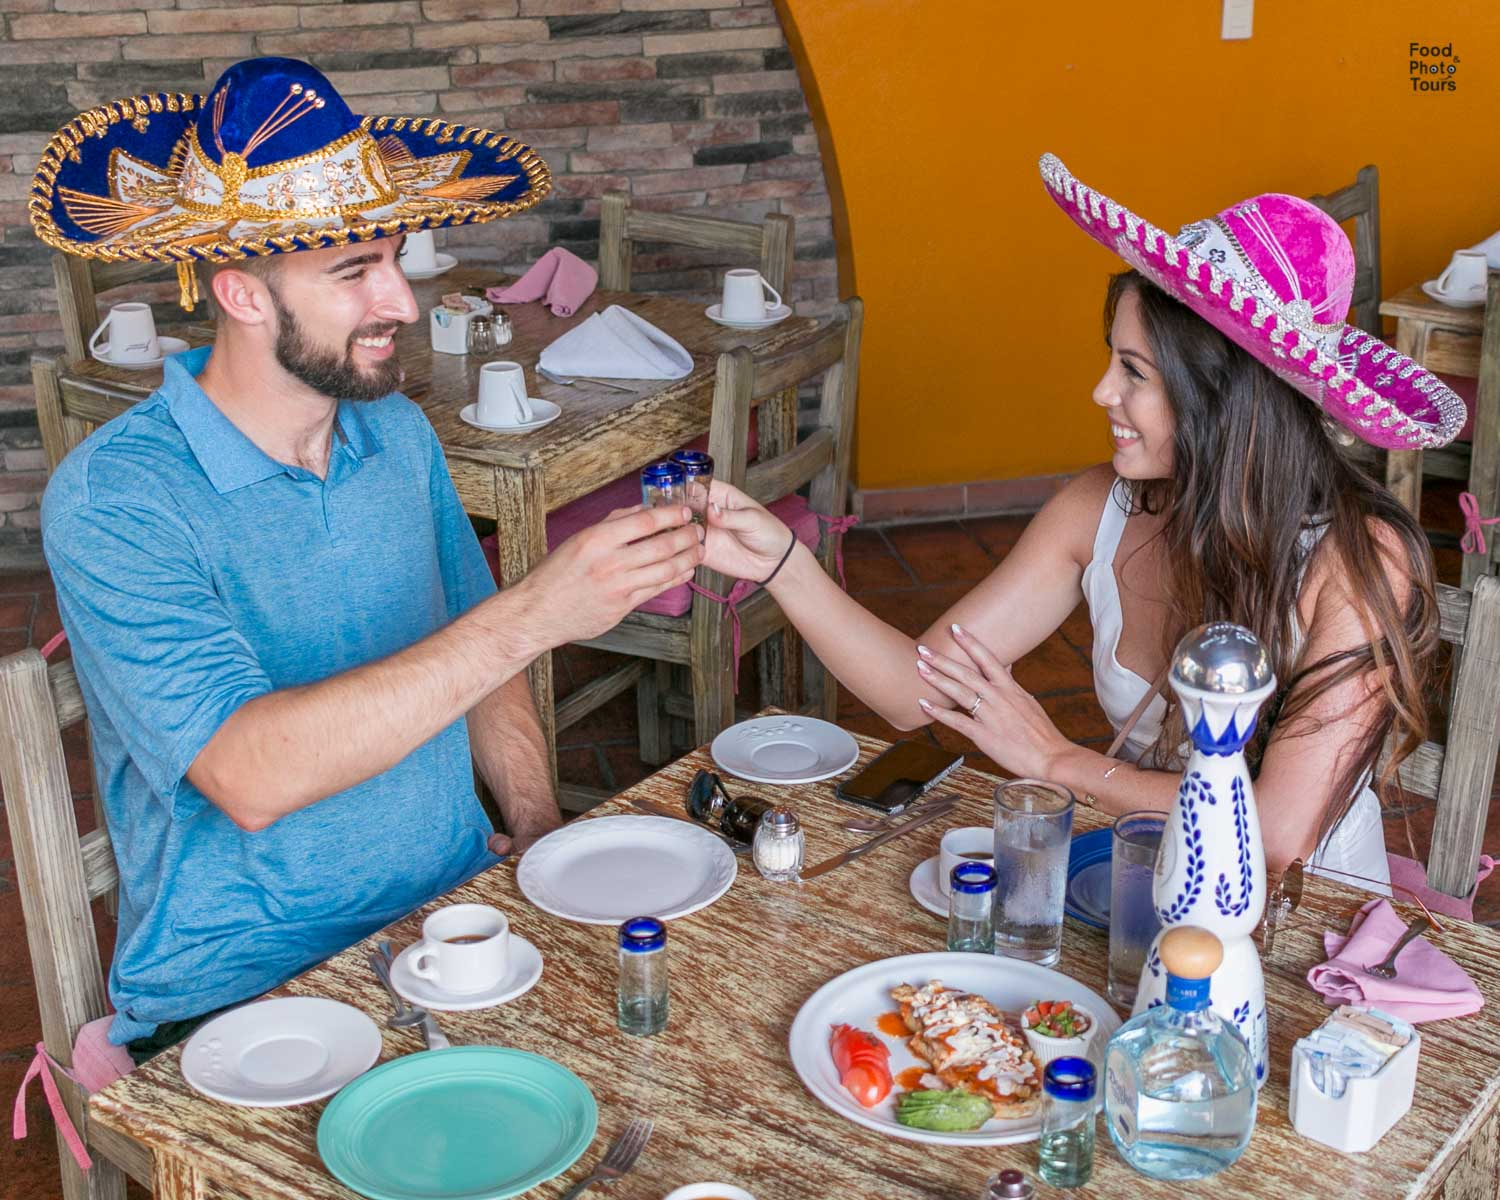 Food Tours and Tequila Tasting in Puerto Vallarta, Mezcal Tasting, Sotol Tasting, Bacanora Tasting, Raicilla Tasting in Puerto Vallarta with Food and Photo Tours